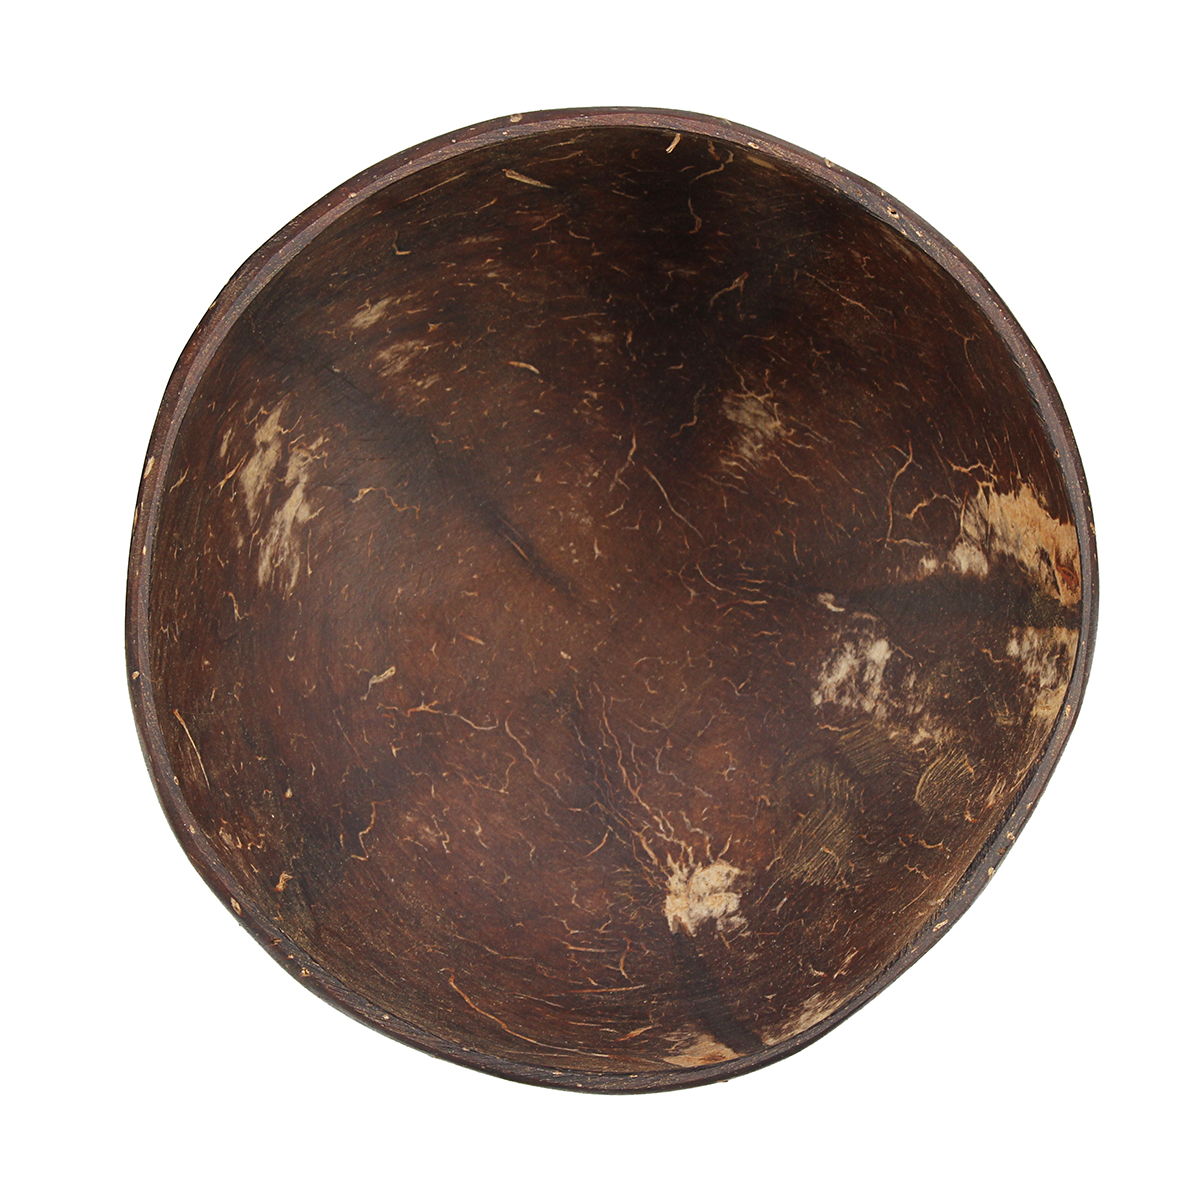 Baby Bamboo Natural Coconut Shell Bowl Spoon Scoop Handmade Vintage Food Set New